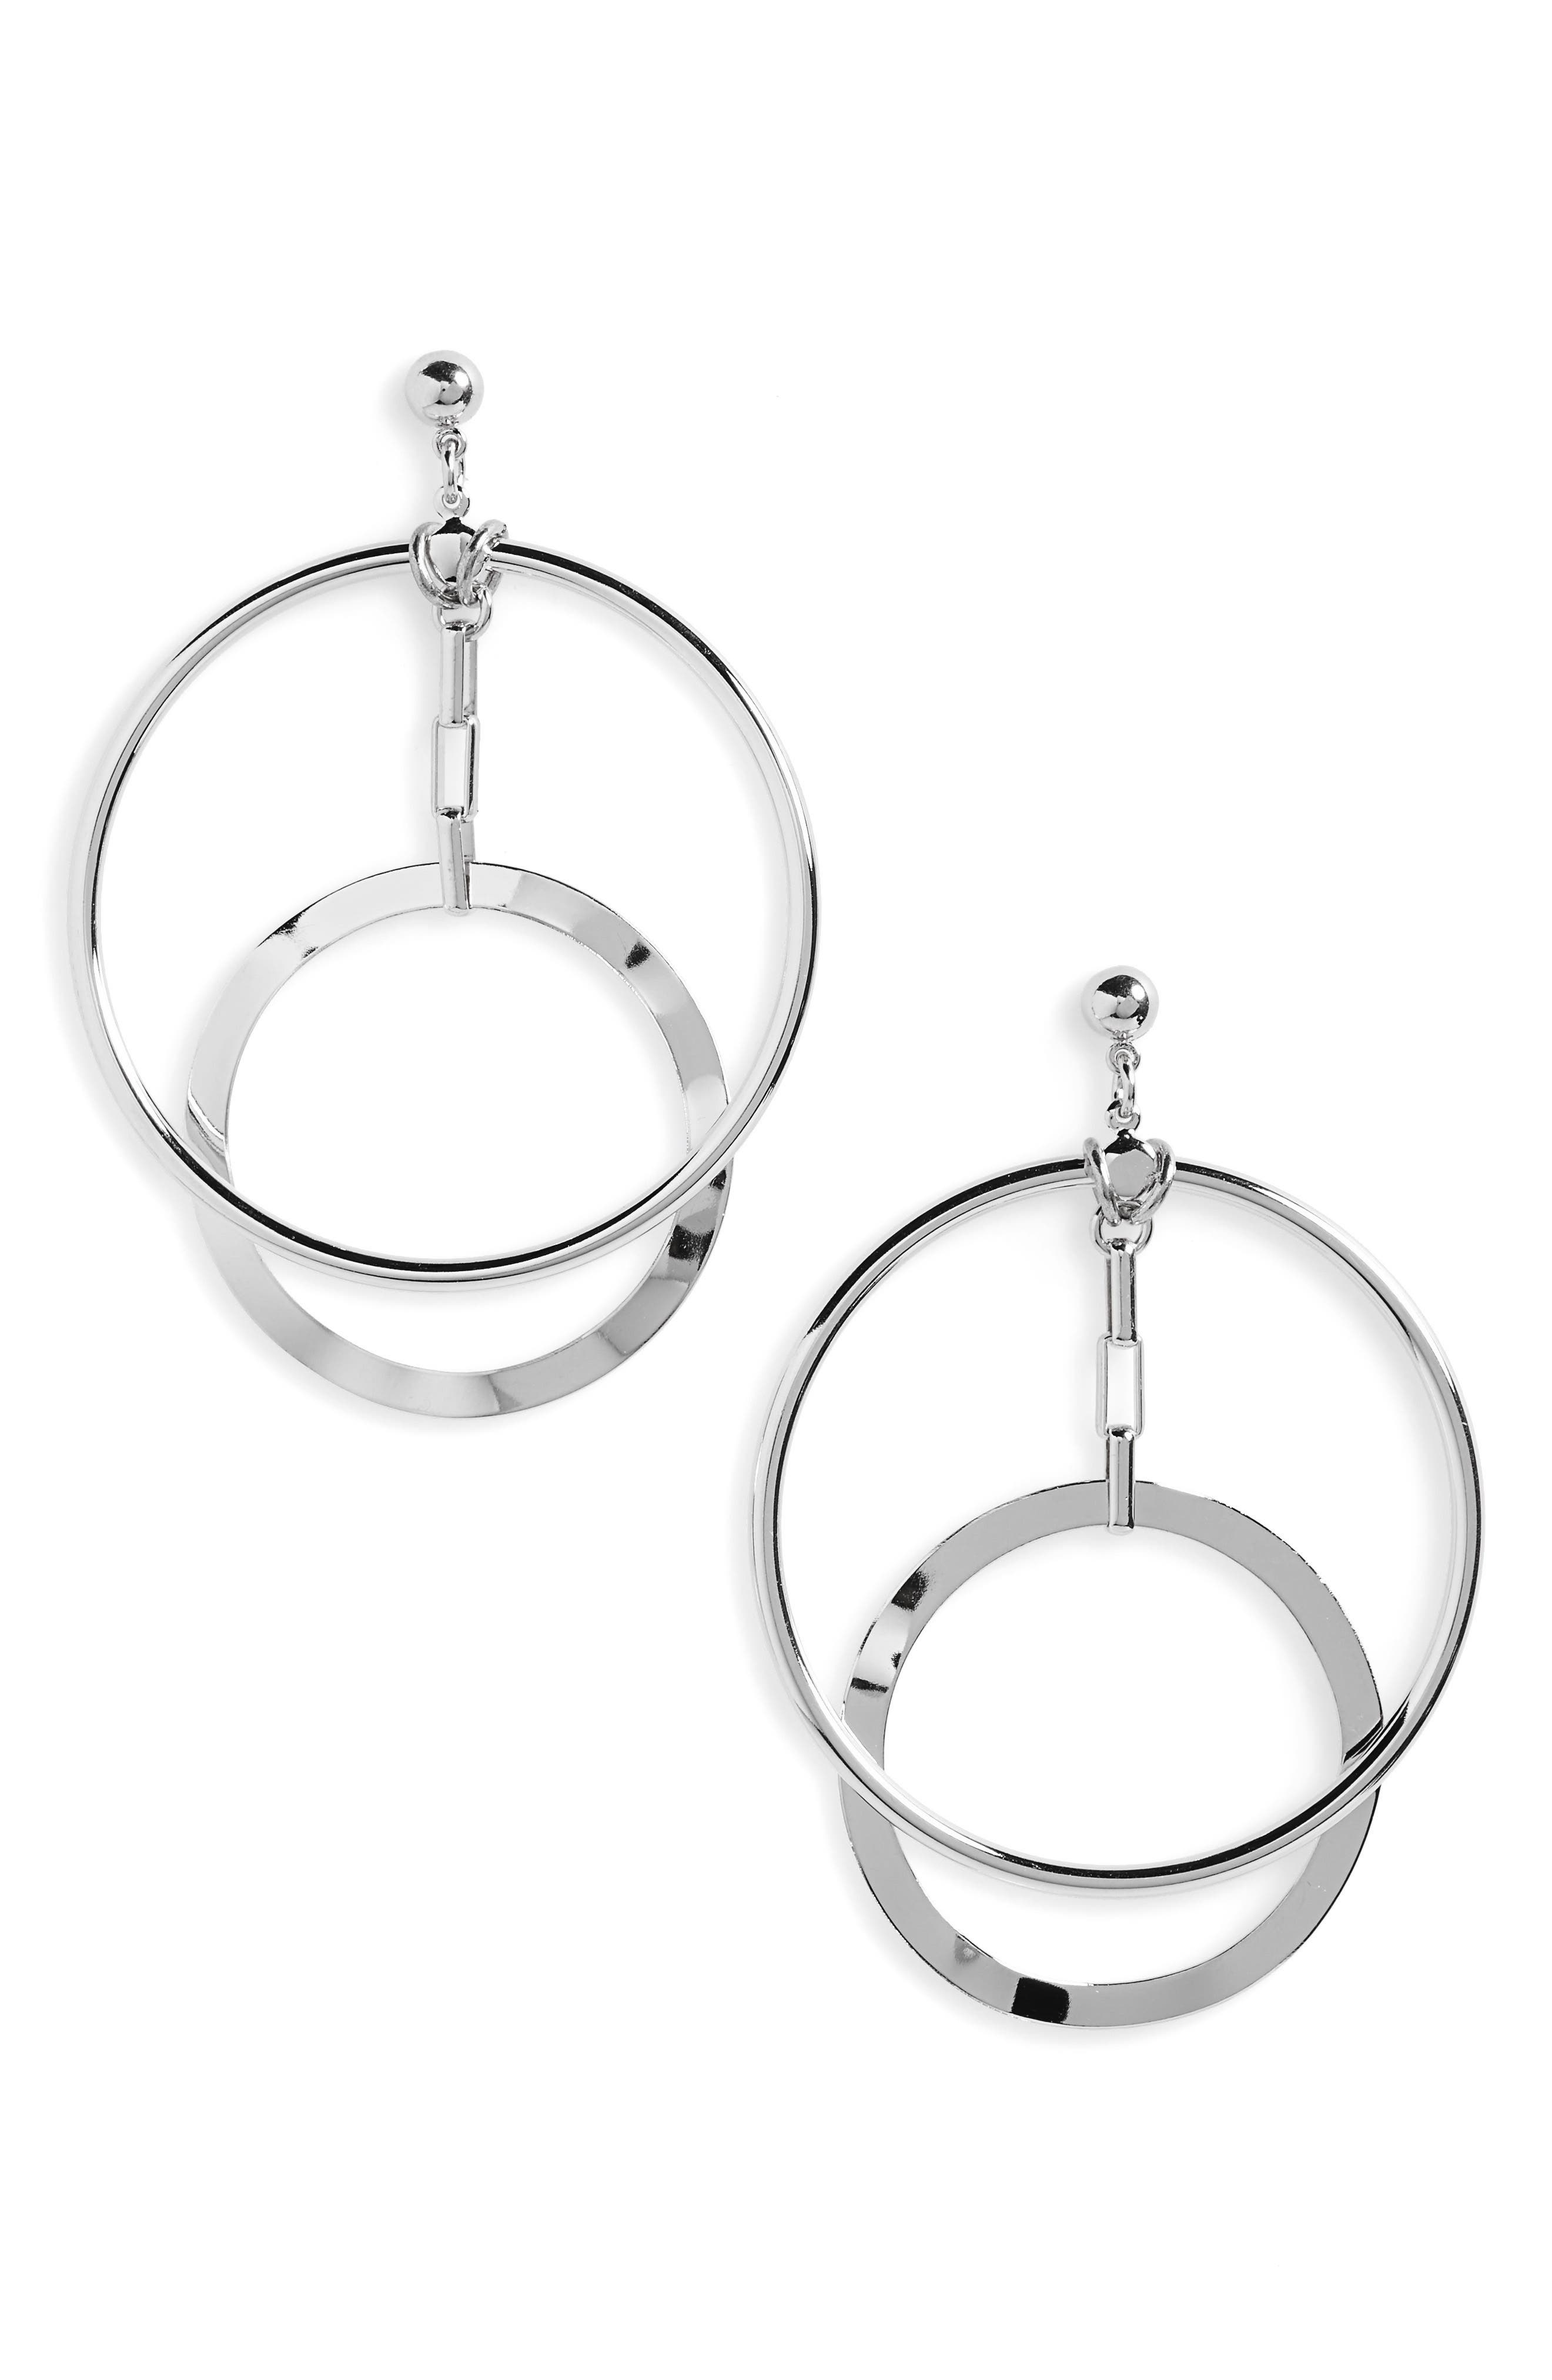 Eclipse Hoop Earrings,                             Main thumbnail 1, color,                             SILVER